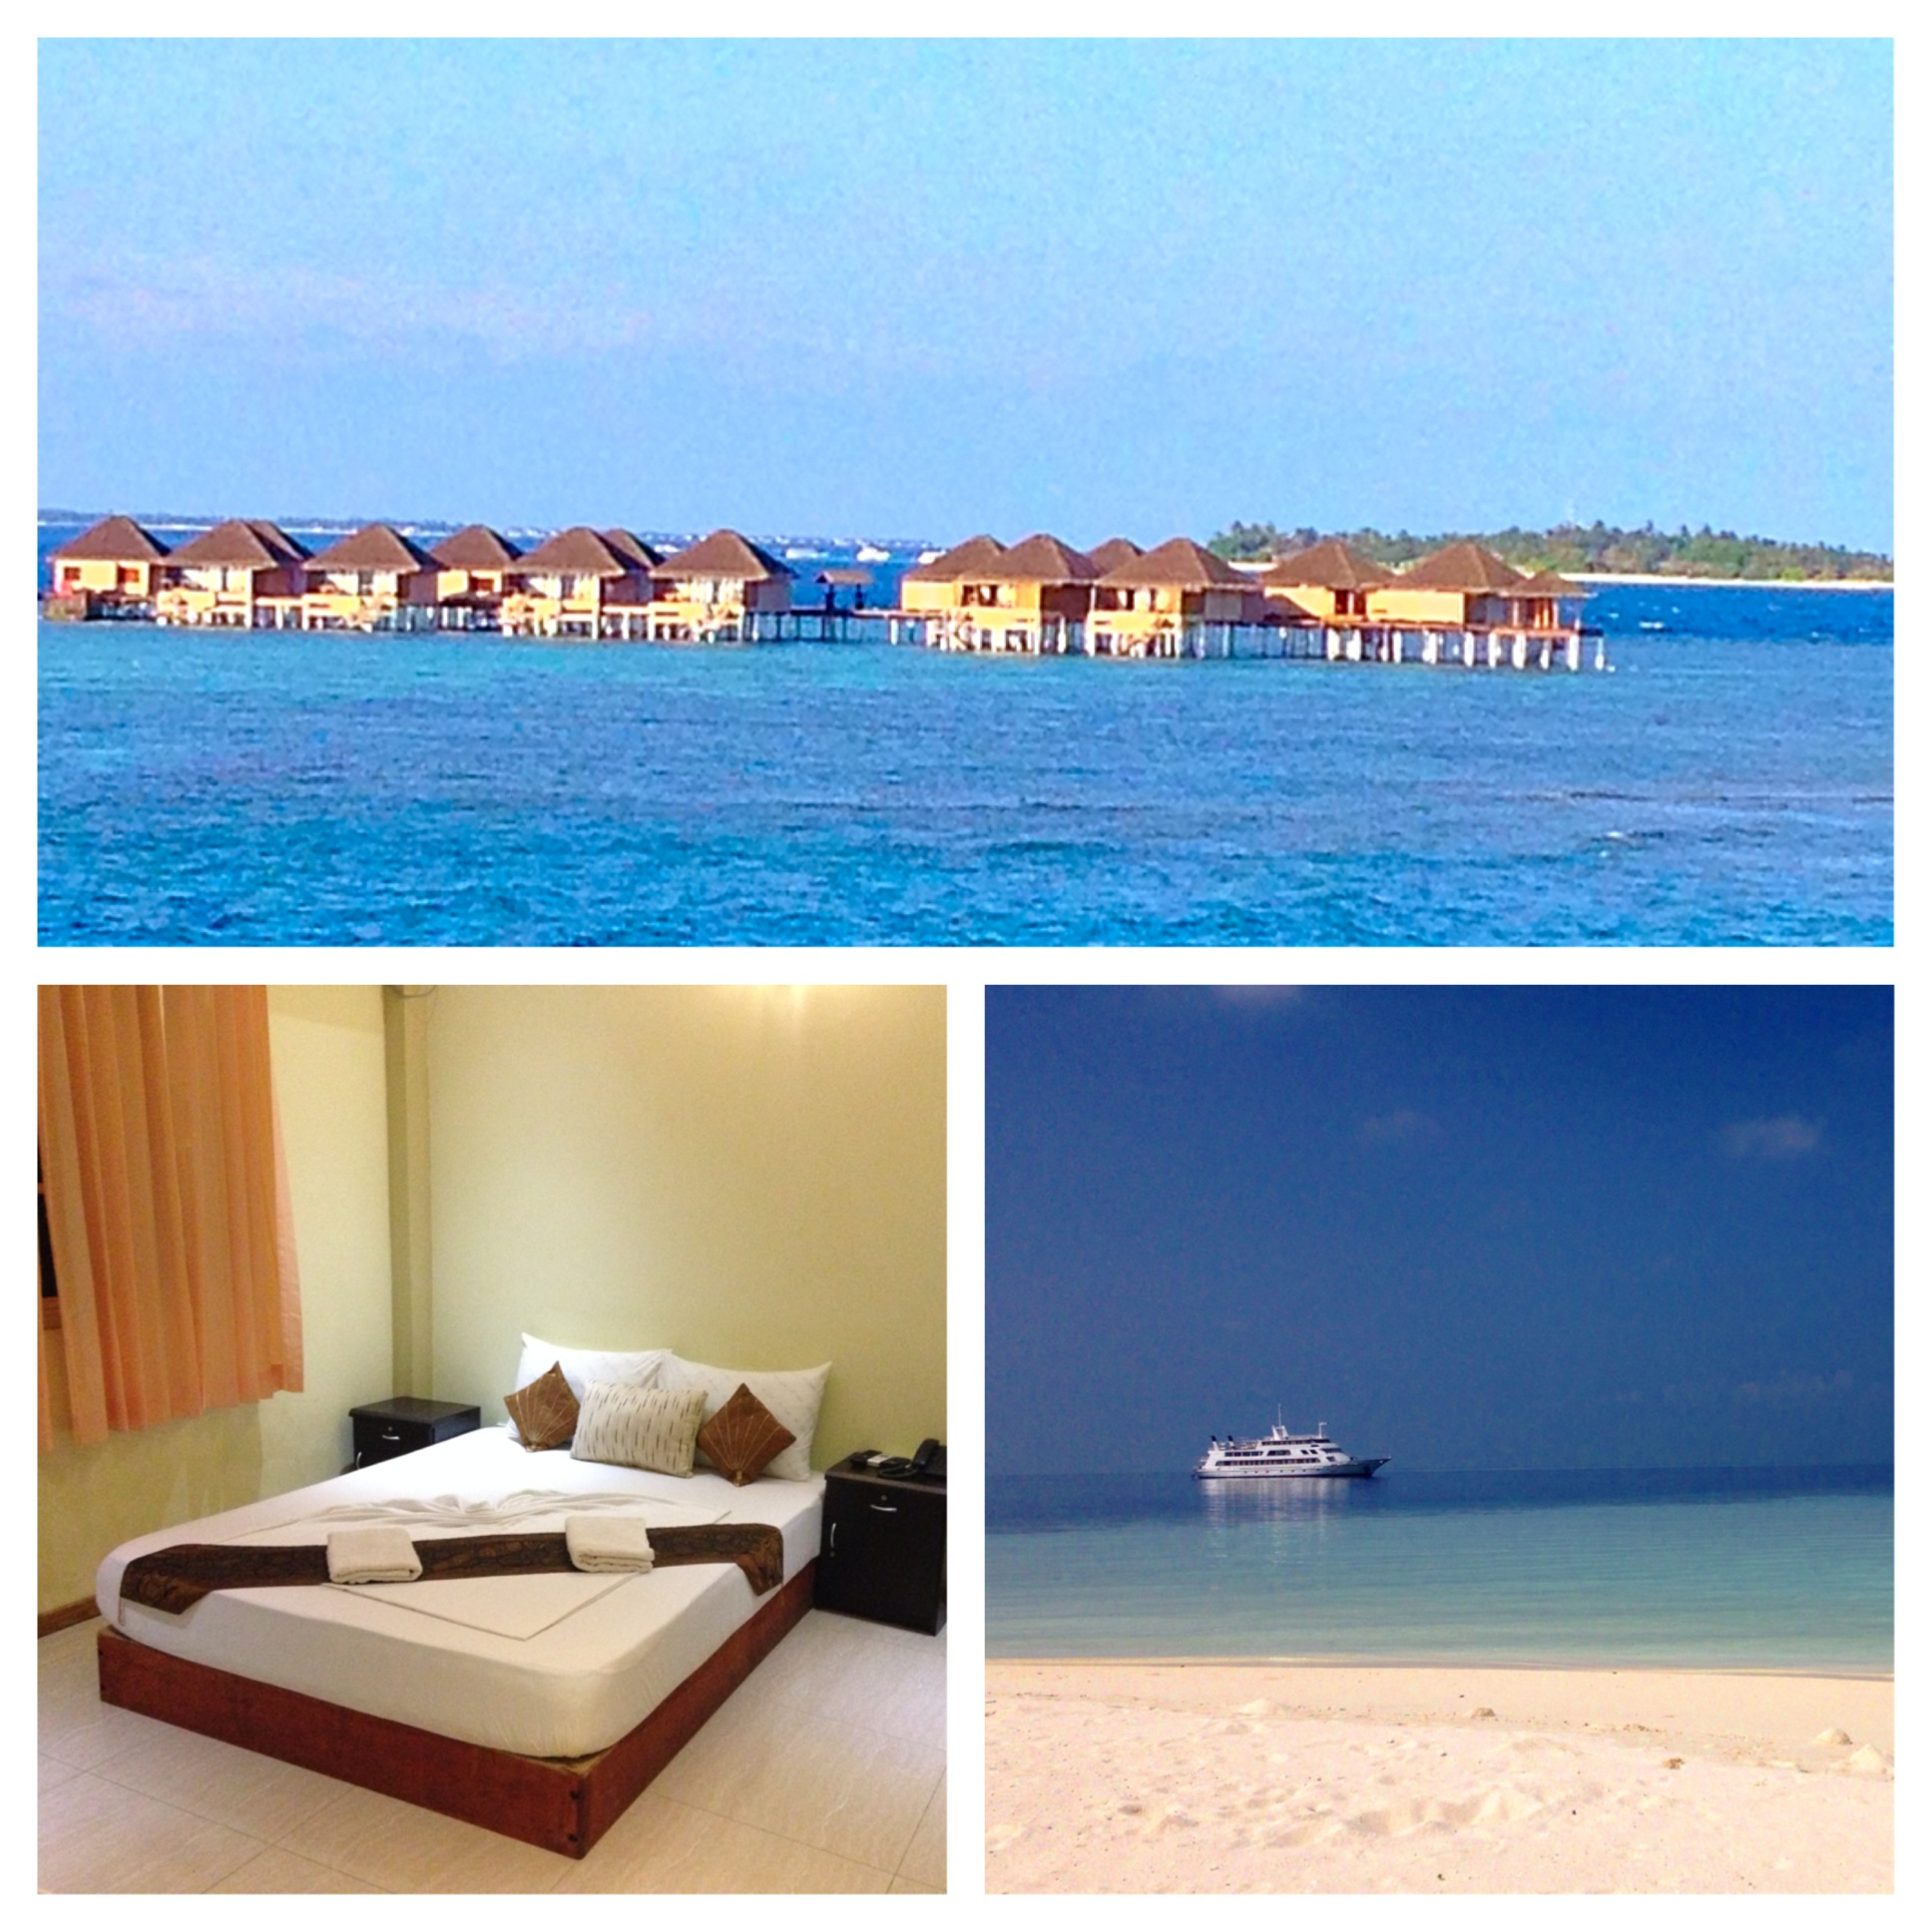 Best Over The Water Bungalows: Cruising The Maldives